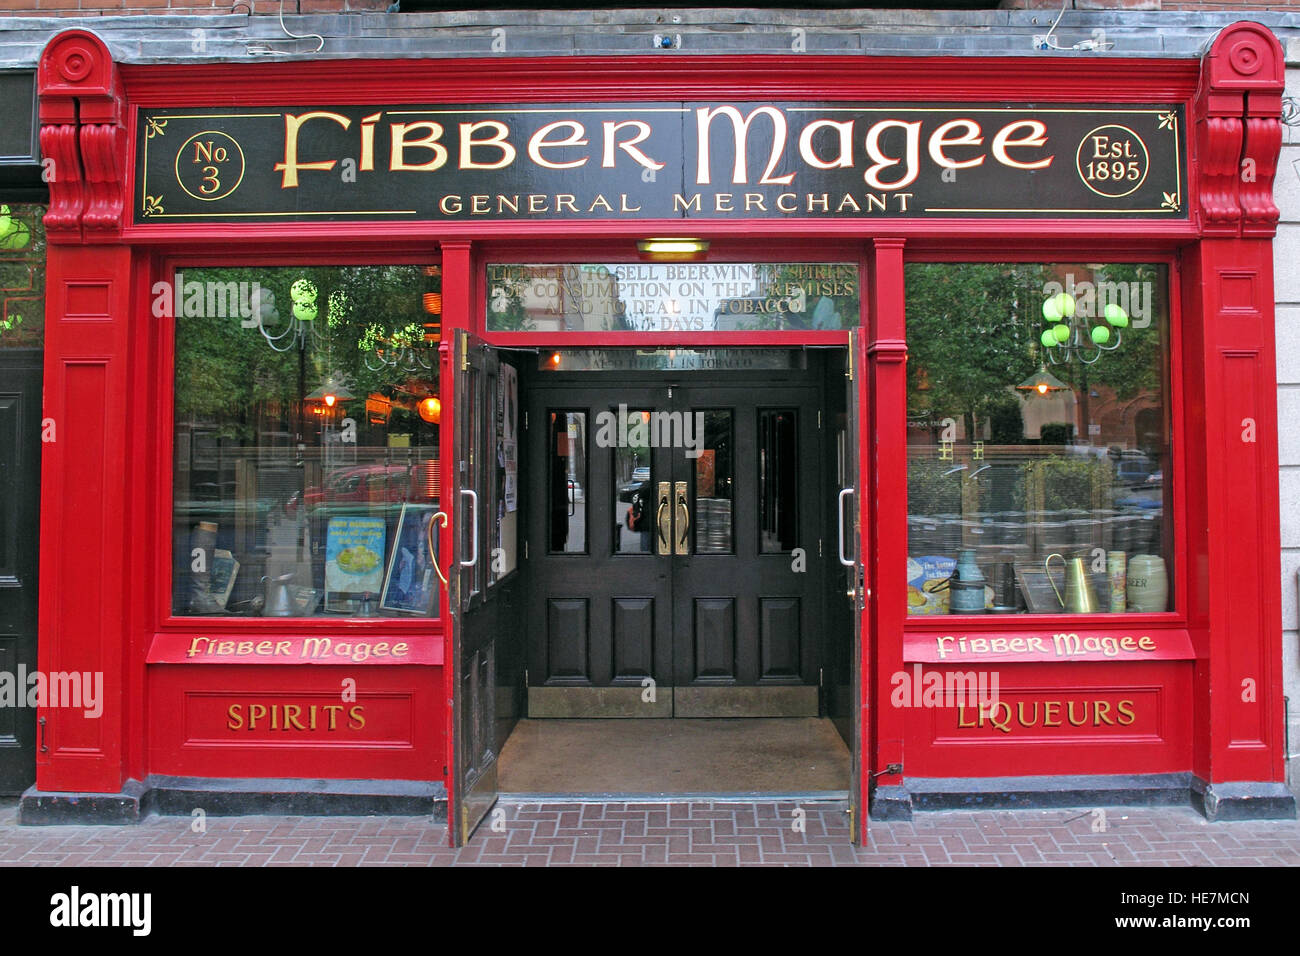 bar,spirits,liqueurs,red,music,traditional,Fibber Magee,General Merchant,Northern Ireland,UK,door,doorway,Irish,music bar,Irish music bar,Irish Pub,craic,Blackstaff,Square,GoTonySmith,@HotpixUK,Tony,Smith,UK,GB,Great,Britain,United,Kingdom,Irish,British,Ireland,problem,with,problem with,issue with,NI,Northern,Northern Ireland,Belfast,City,Centre,Art,Artists,the,troubles,The Troubles,Good Friday Agreement,Peace,honour,painting,wall,walls,tribute,republicanism,Fight,Justice,West,Beal,feirste,martyrs,social,tour,tourism,tourists,urban,six,counties,6,backdrop,county,Antrim,Buy Pictures of,Buy Images Of,Images of,Stock Images,Tony Smith,United Kingdom,Great Britain,British Isles